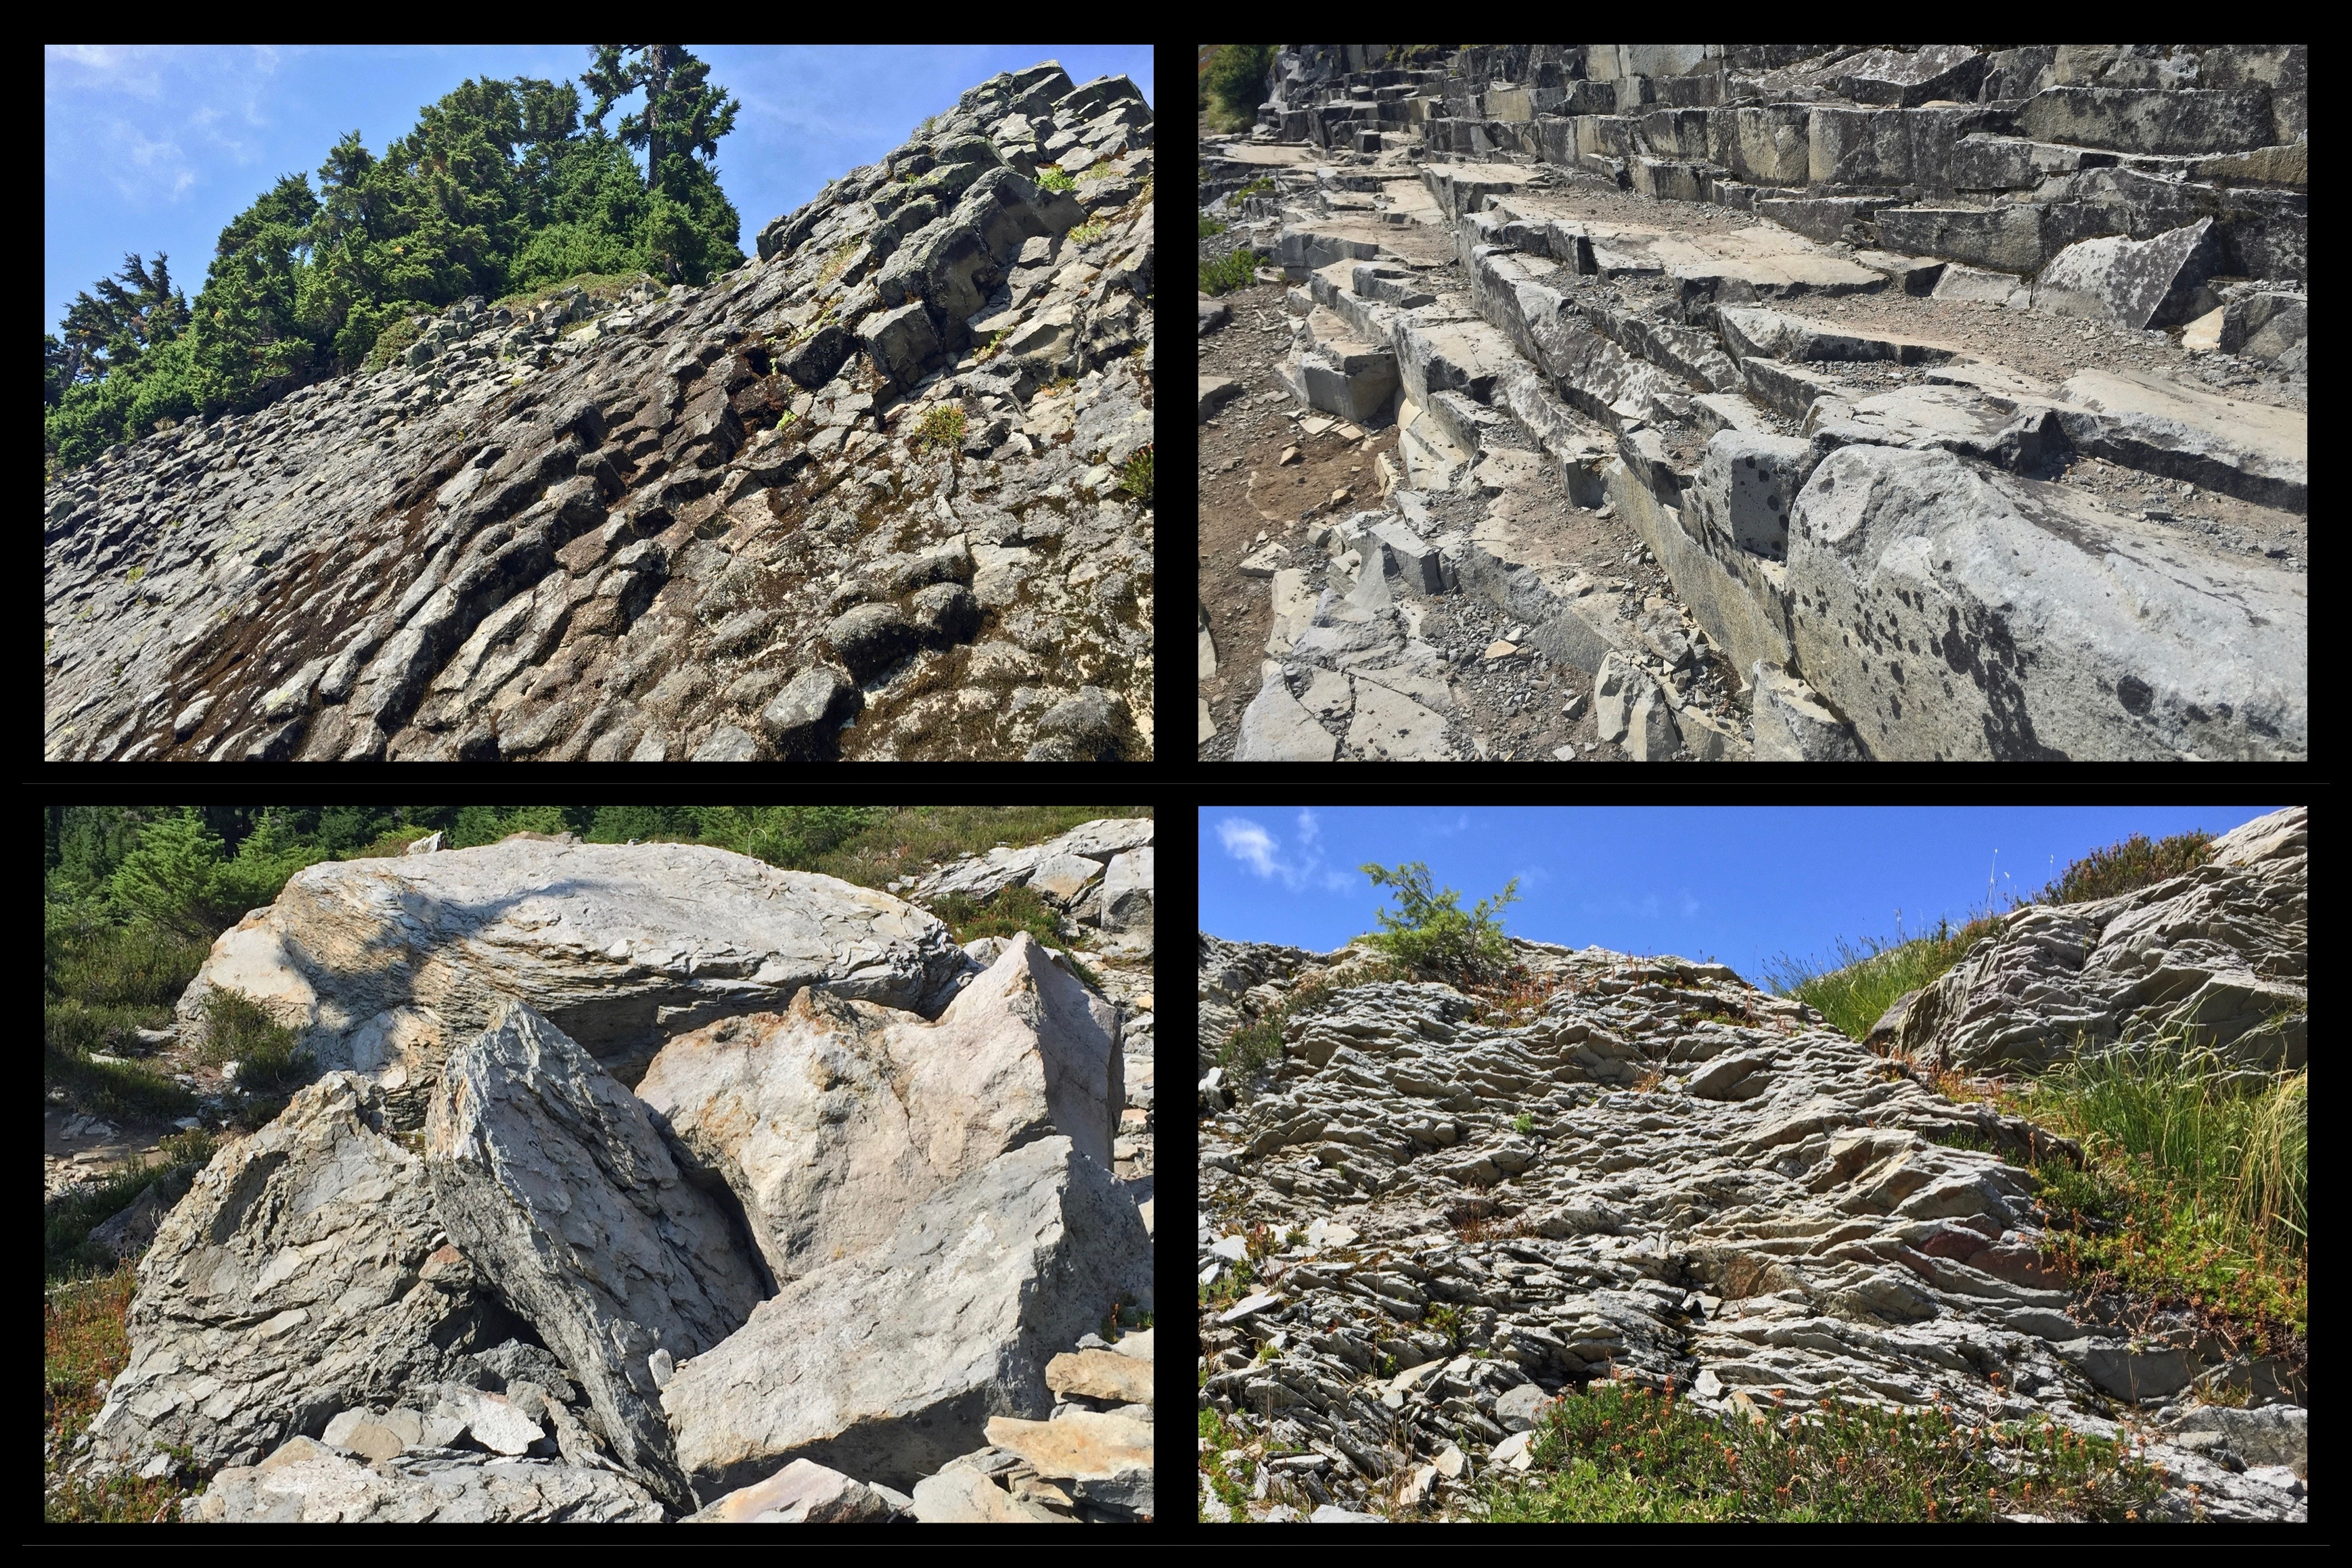 Outcrops of stone fractured into slabs, benches, and columns, neatly stacked as if by human hand, are characteristic features of Table Mountain. Wild Goose Trail/Chain Lakes Loop, August 09, 2015.